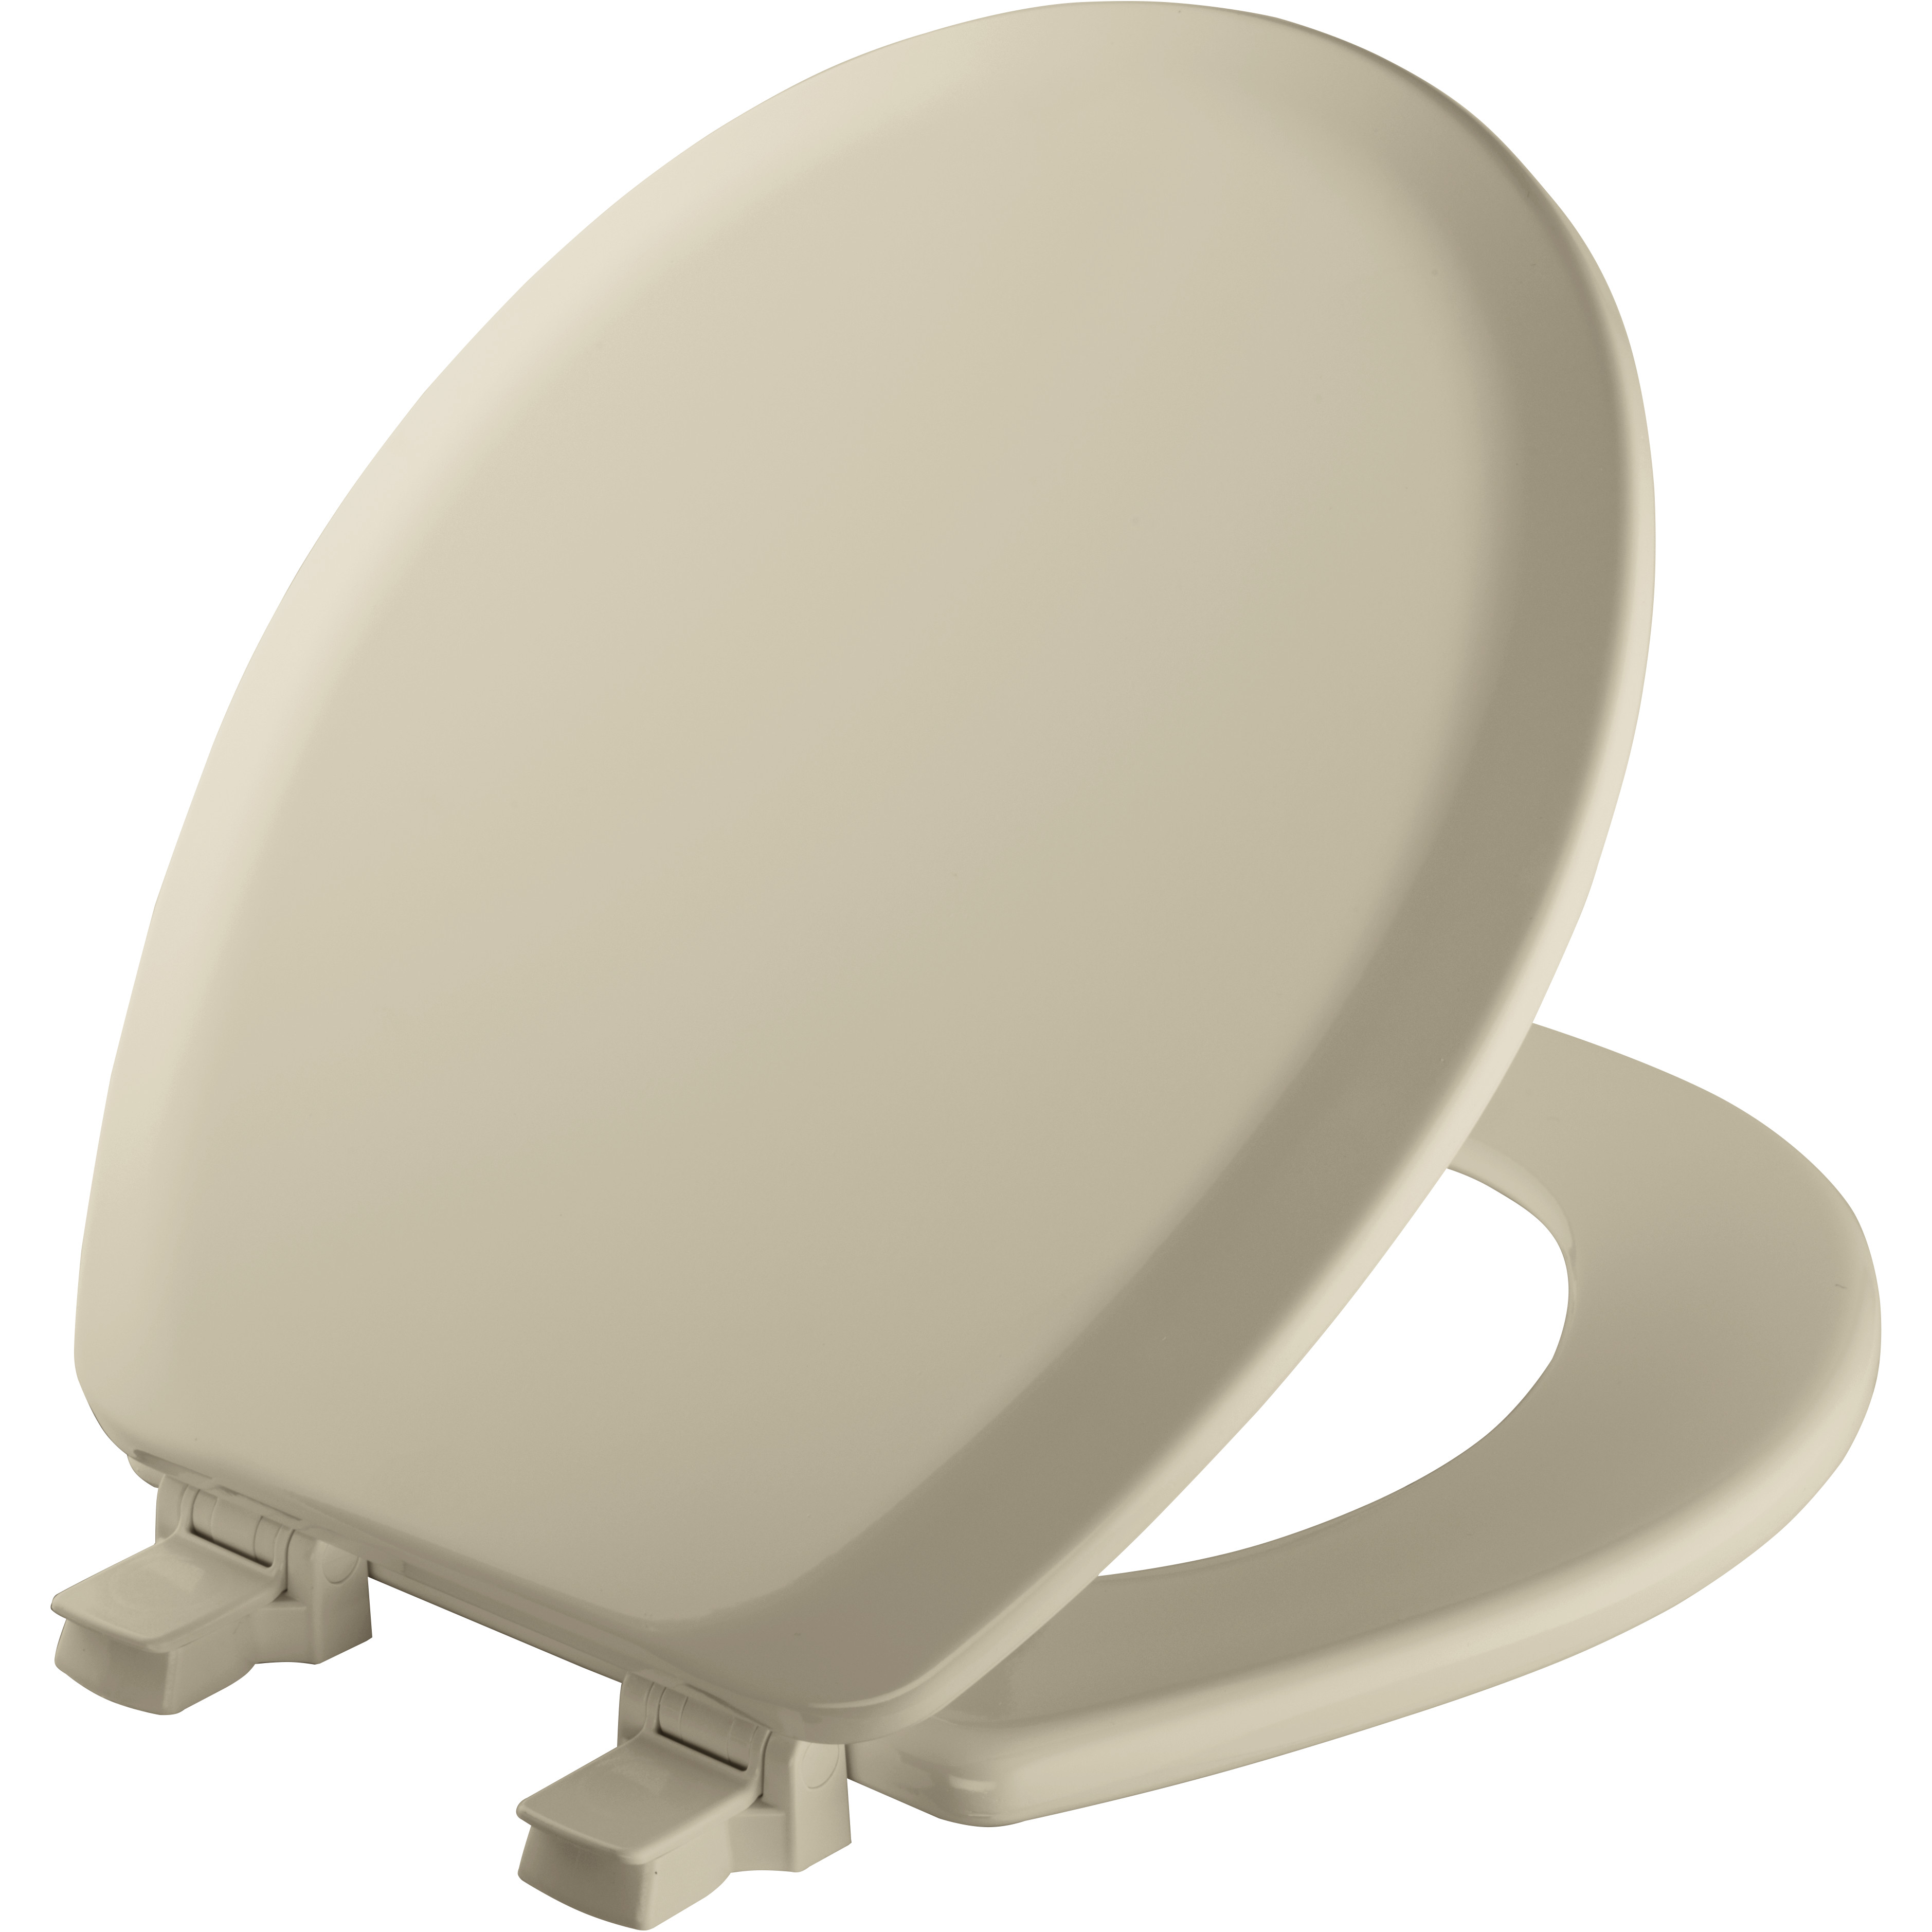 Mayfair Lift Off Round Enameled Wood Toilet Seat in Bone with STA-TITE